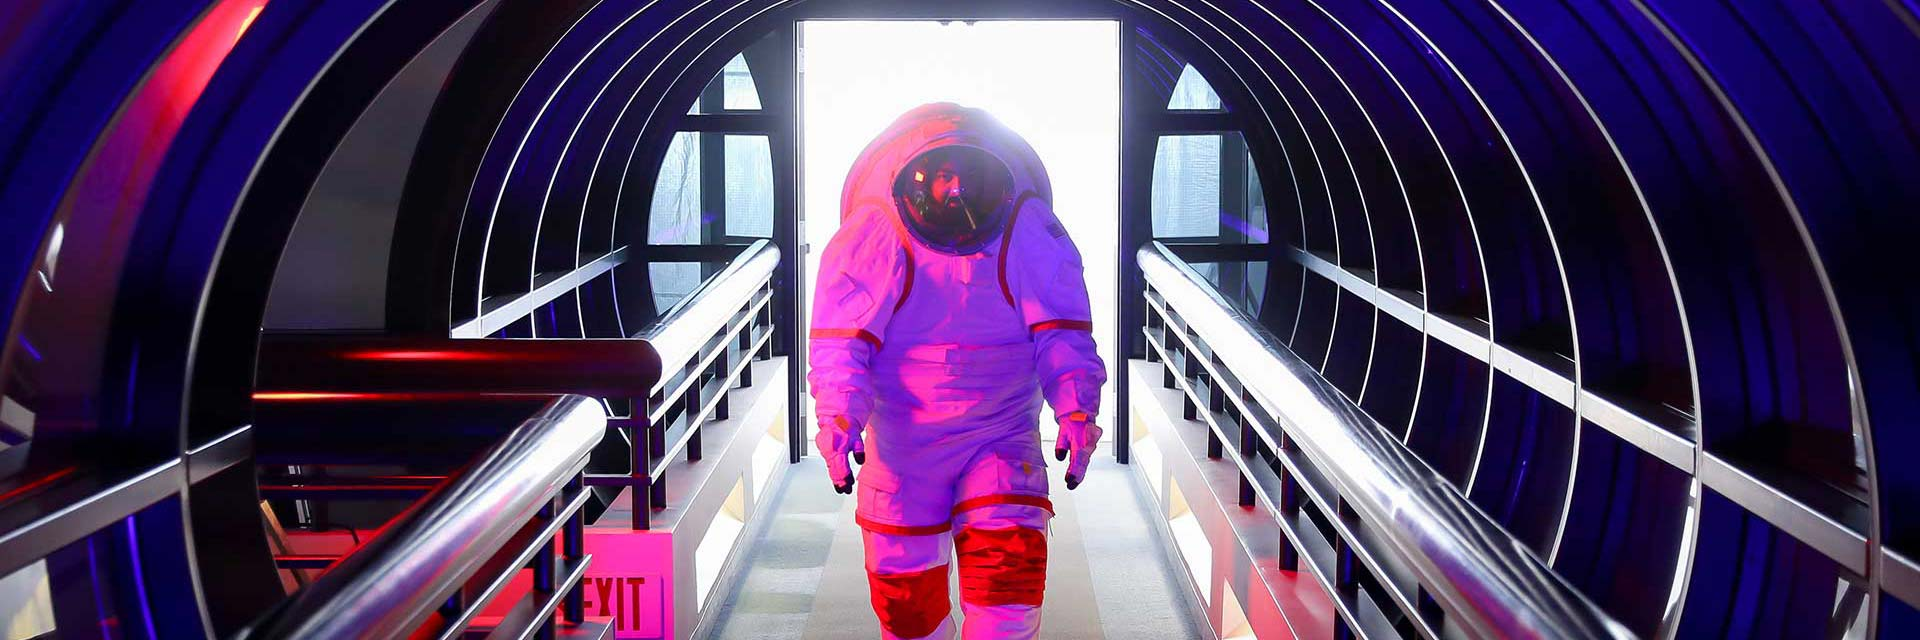 space studies student in spacesuit